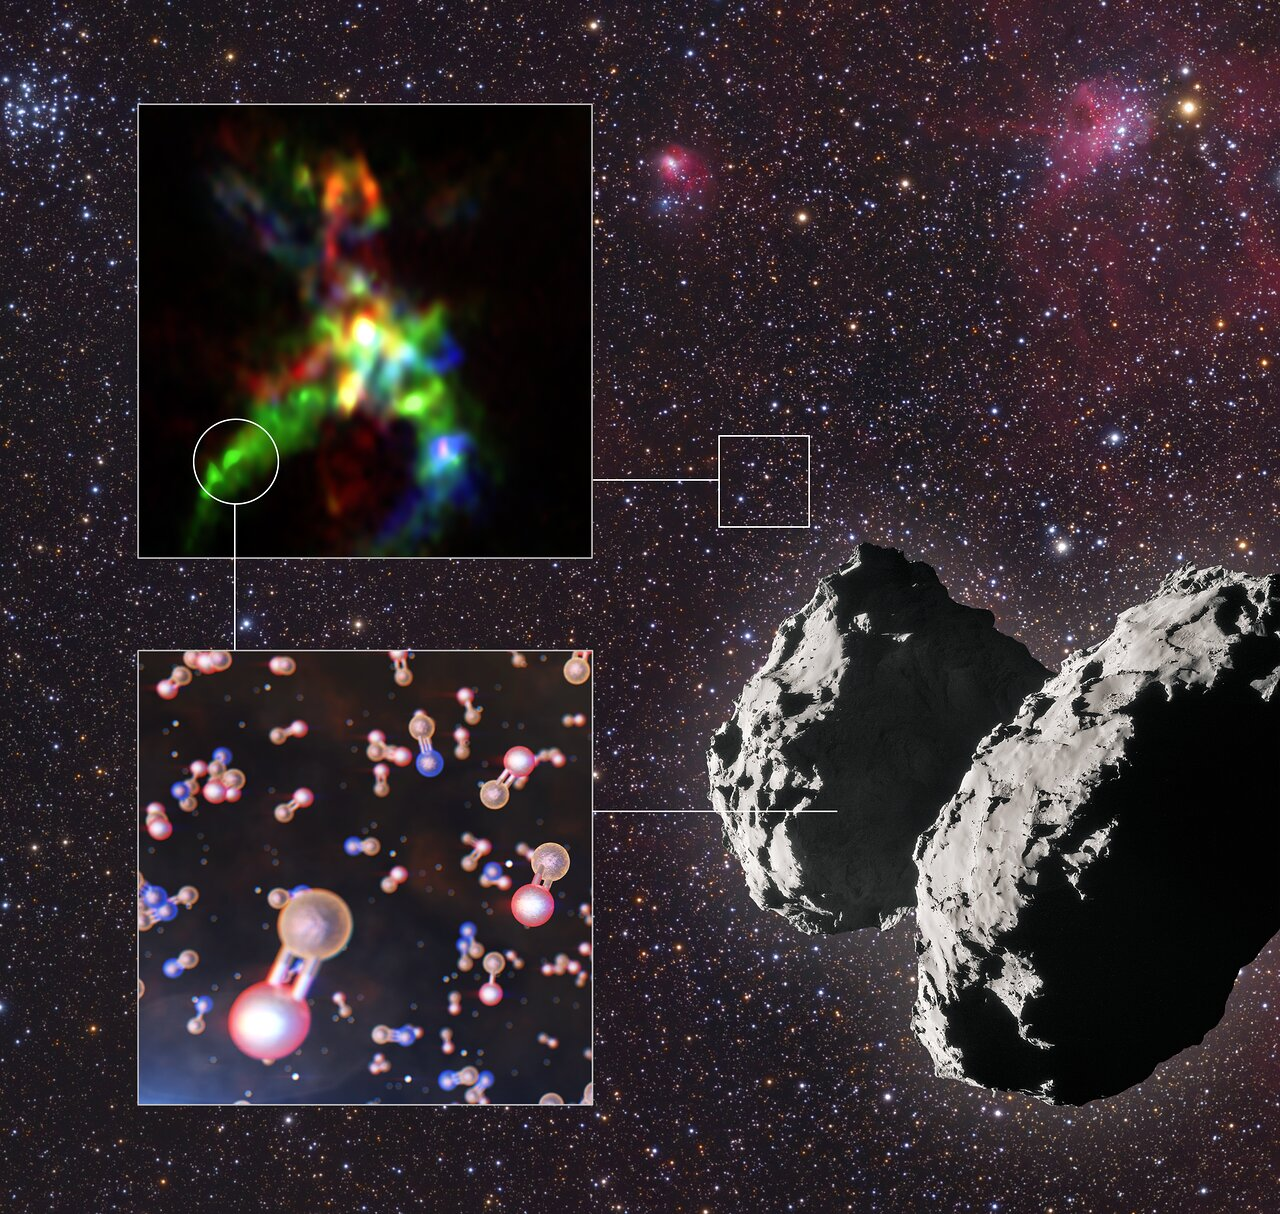 Phosphorus-bearing molecules found in a star-forming region and comet 67P